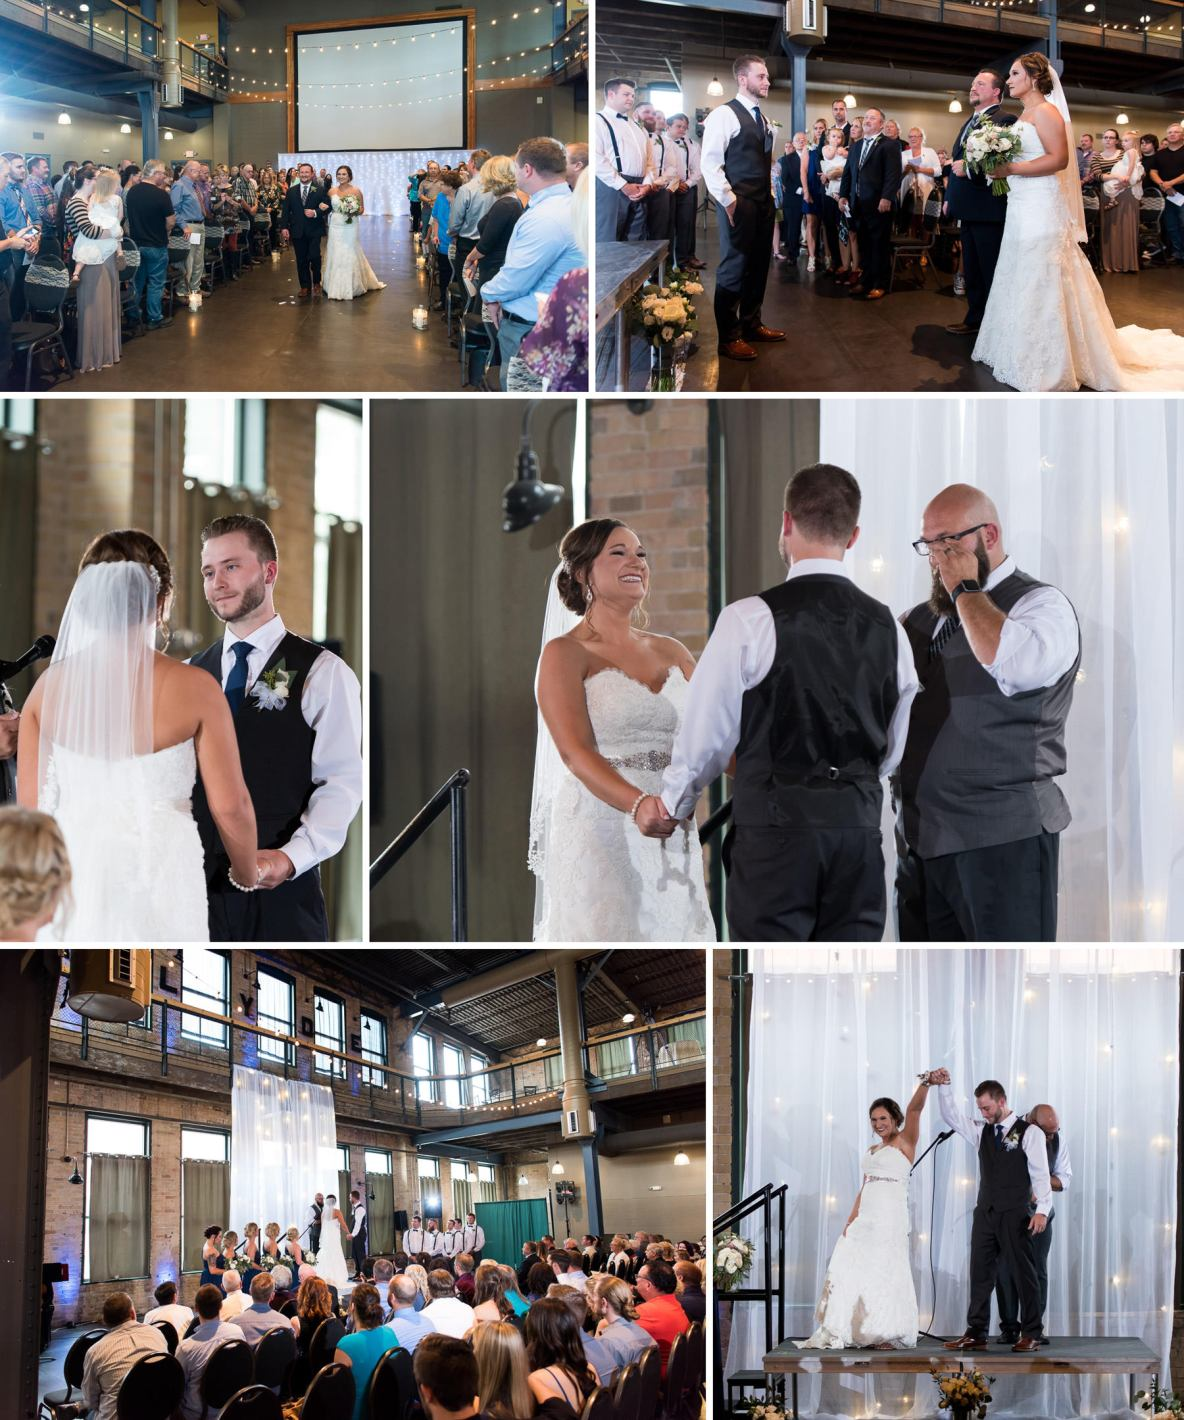 Photos of the indoor wedding ceremony.